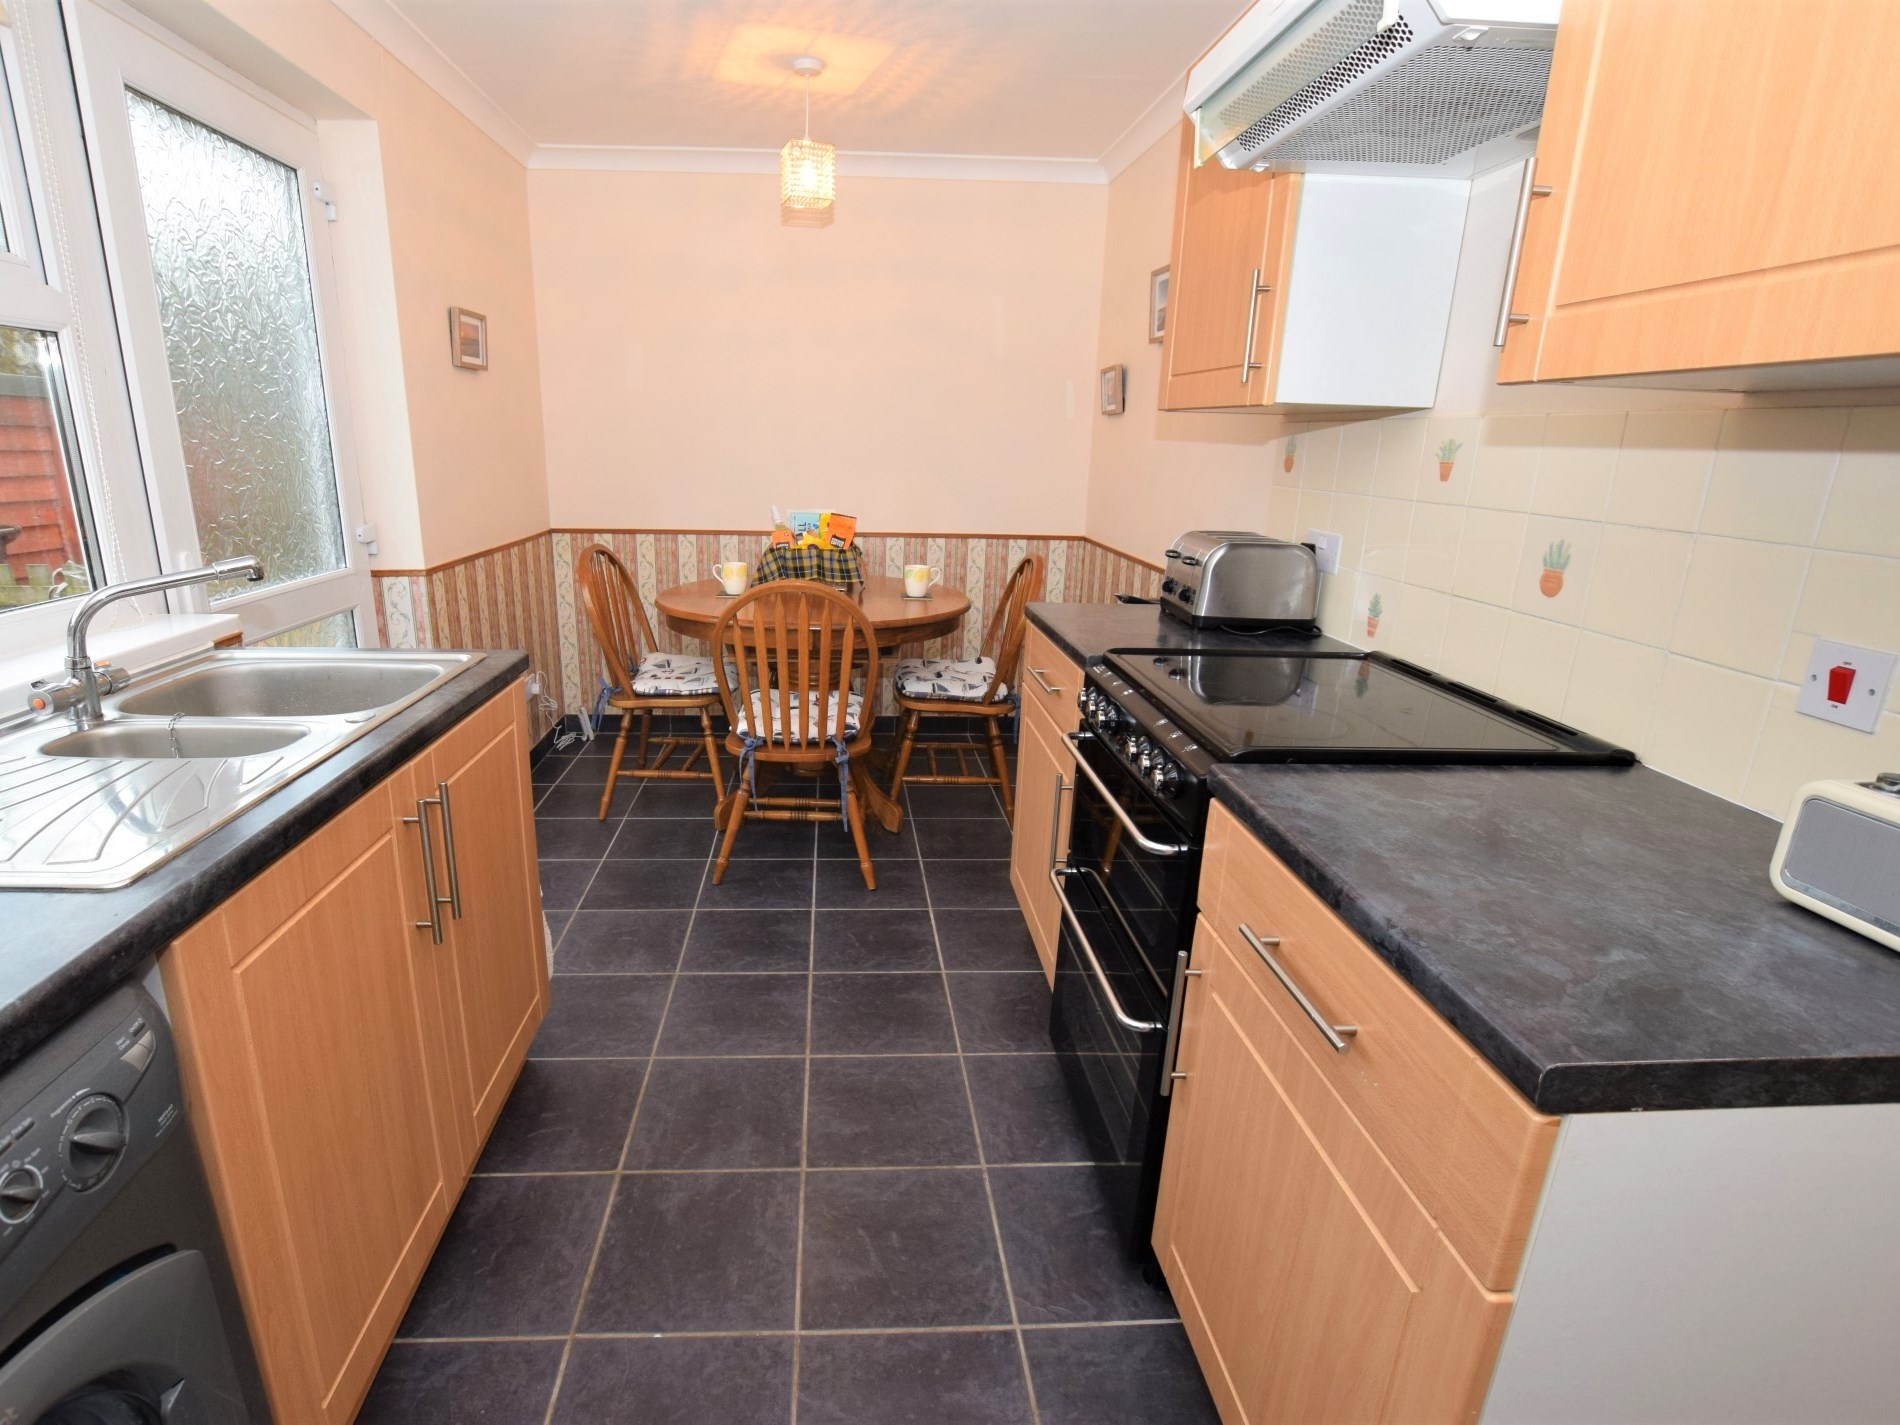 3 Bedroom Cottage in Redruth, Cornwall